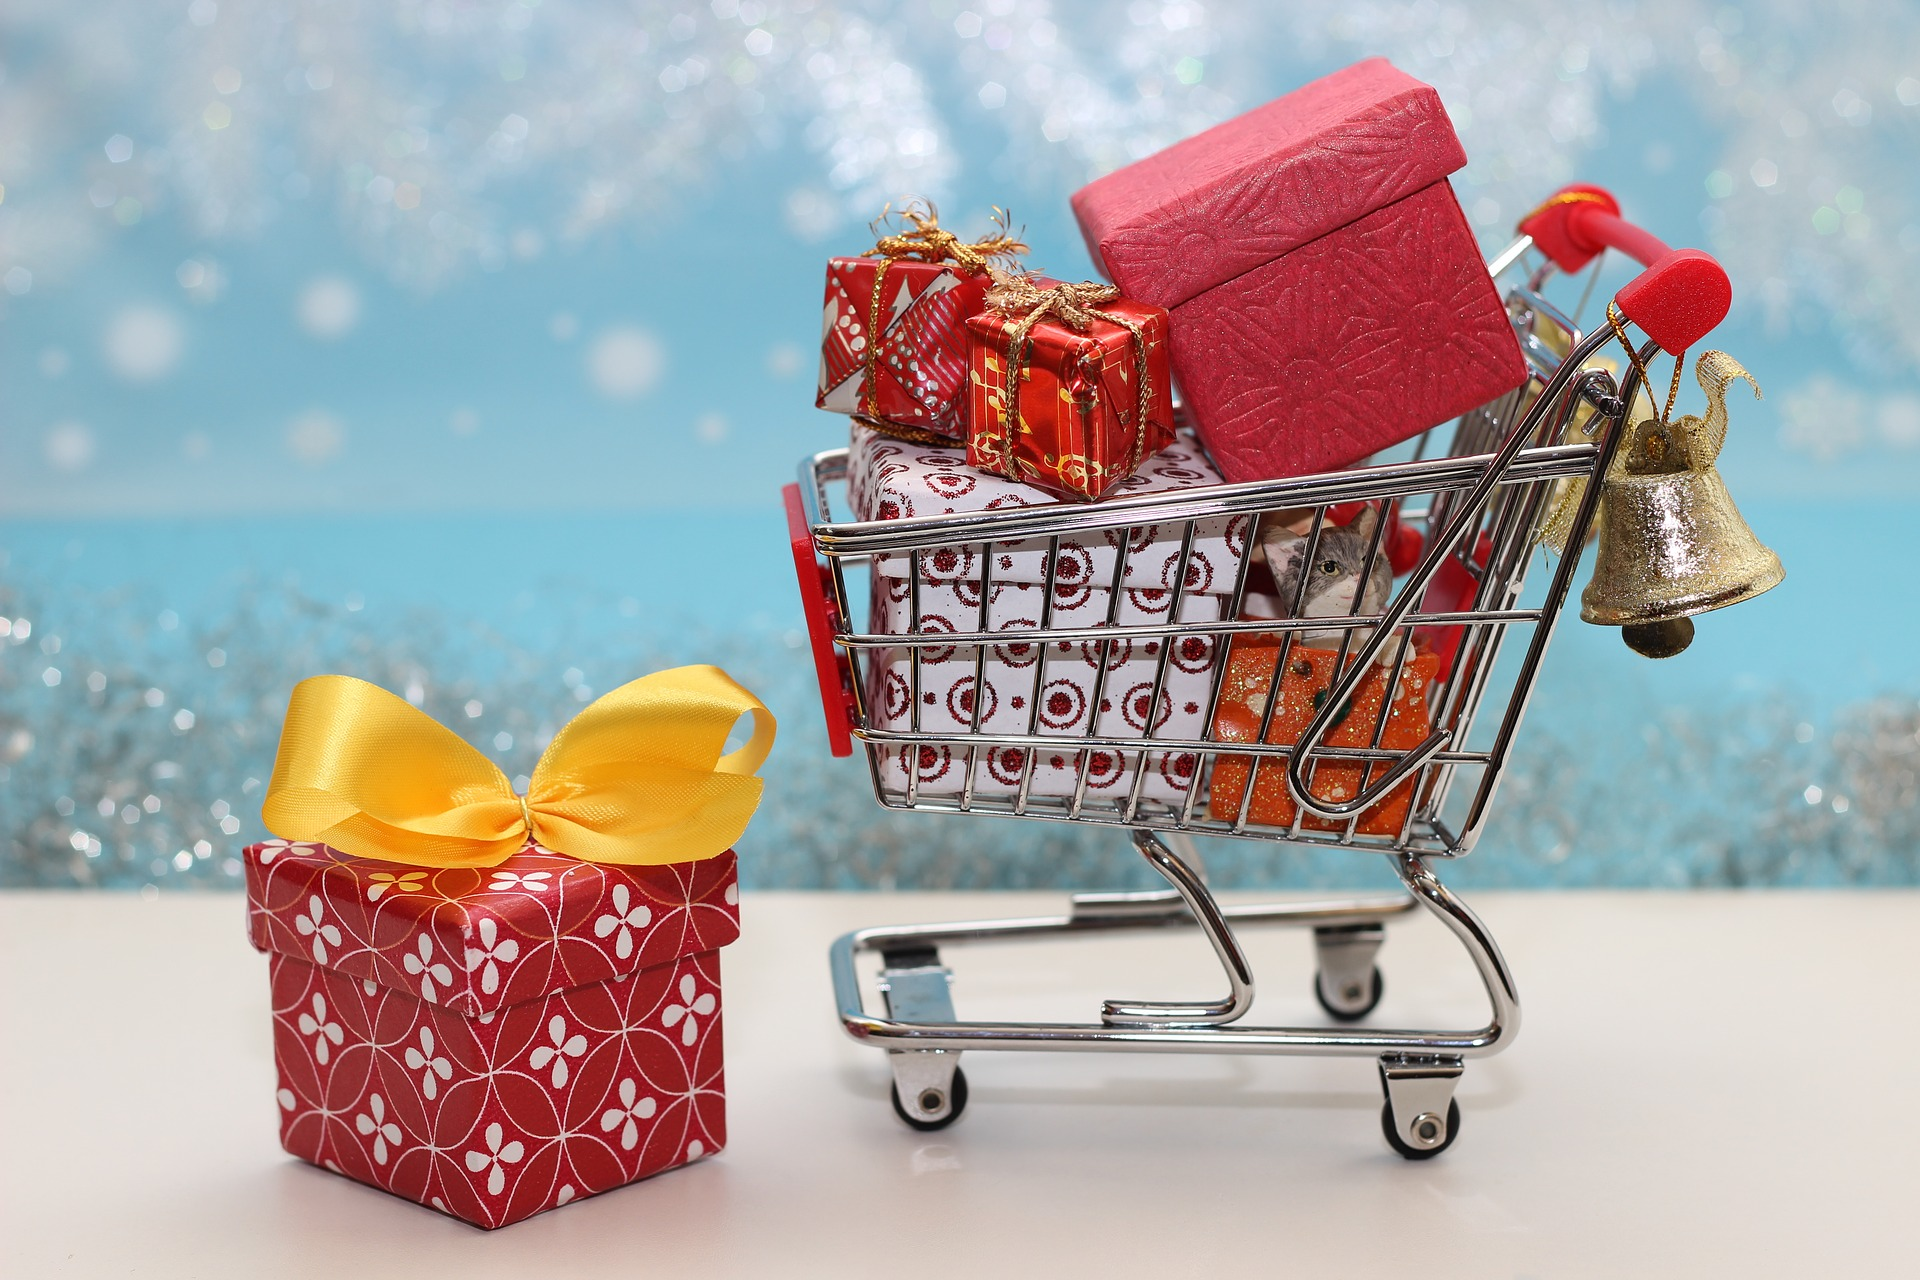 Is Wal Mart Open On Christmas.Is Walmart Open On Christmas Savingadvice Com Blog